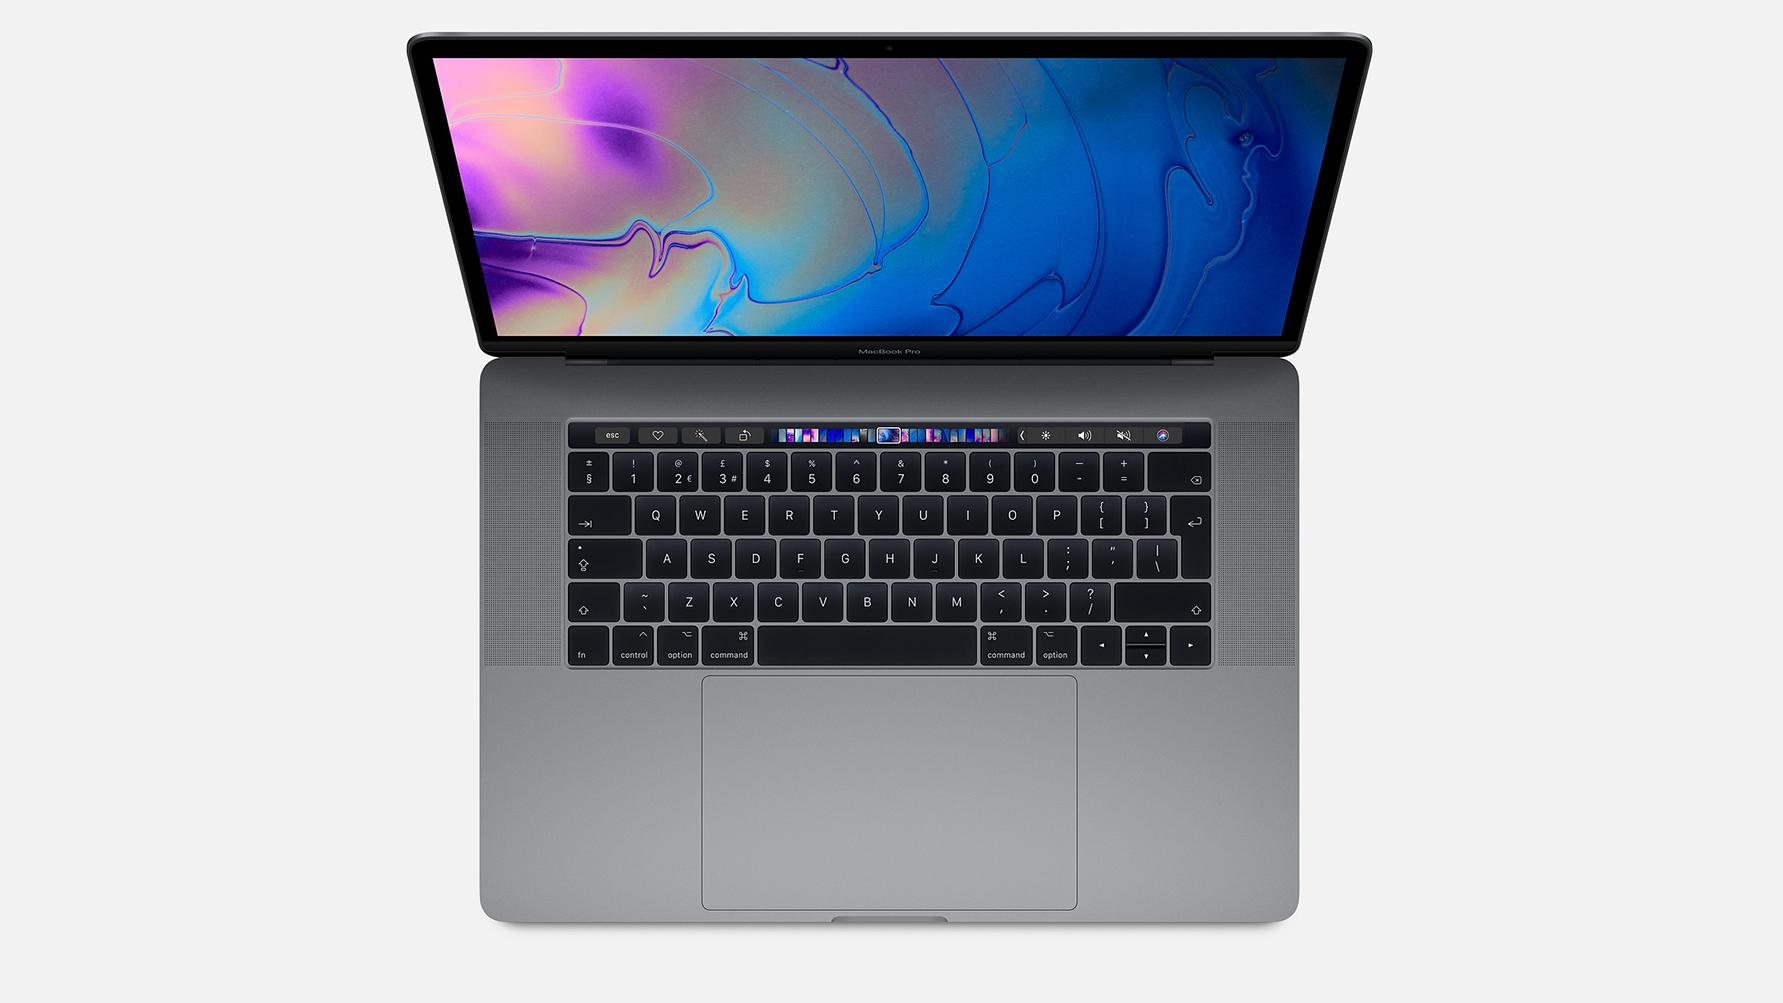 MacBook Pro with Touch Bar (2018)